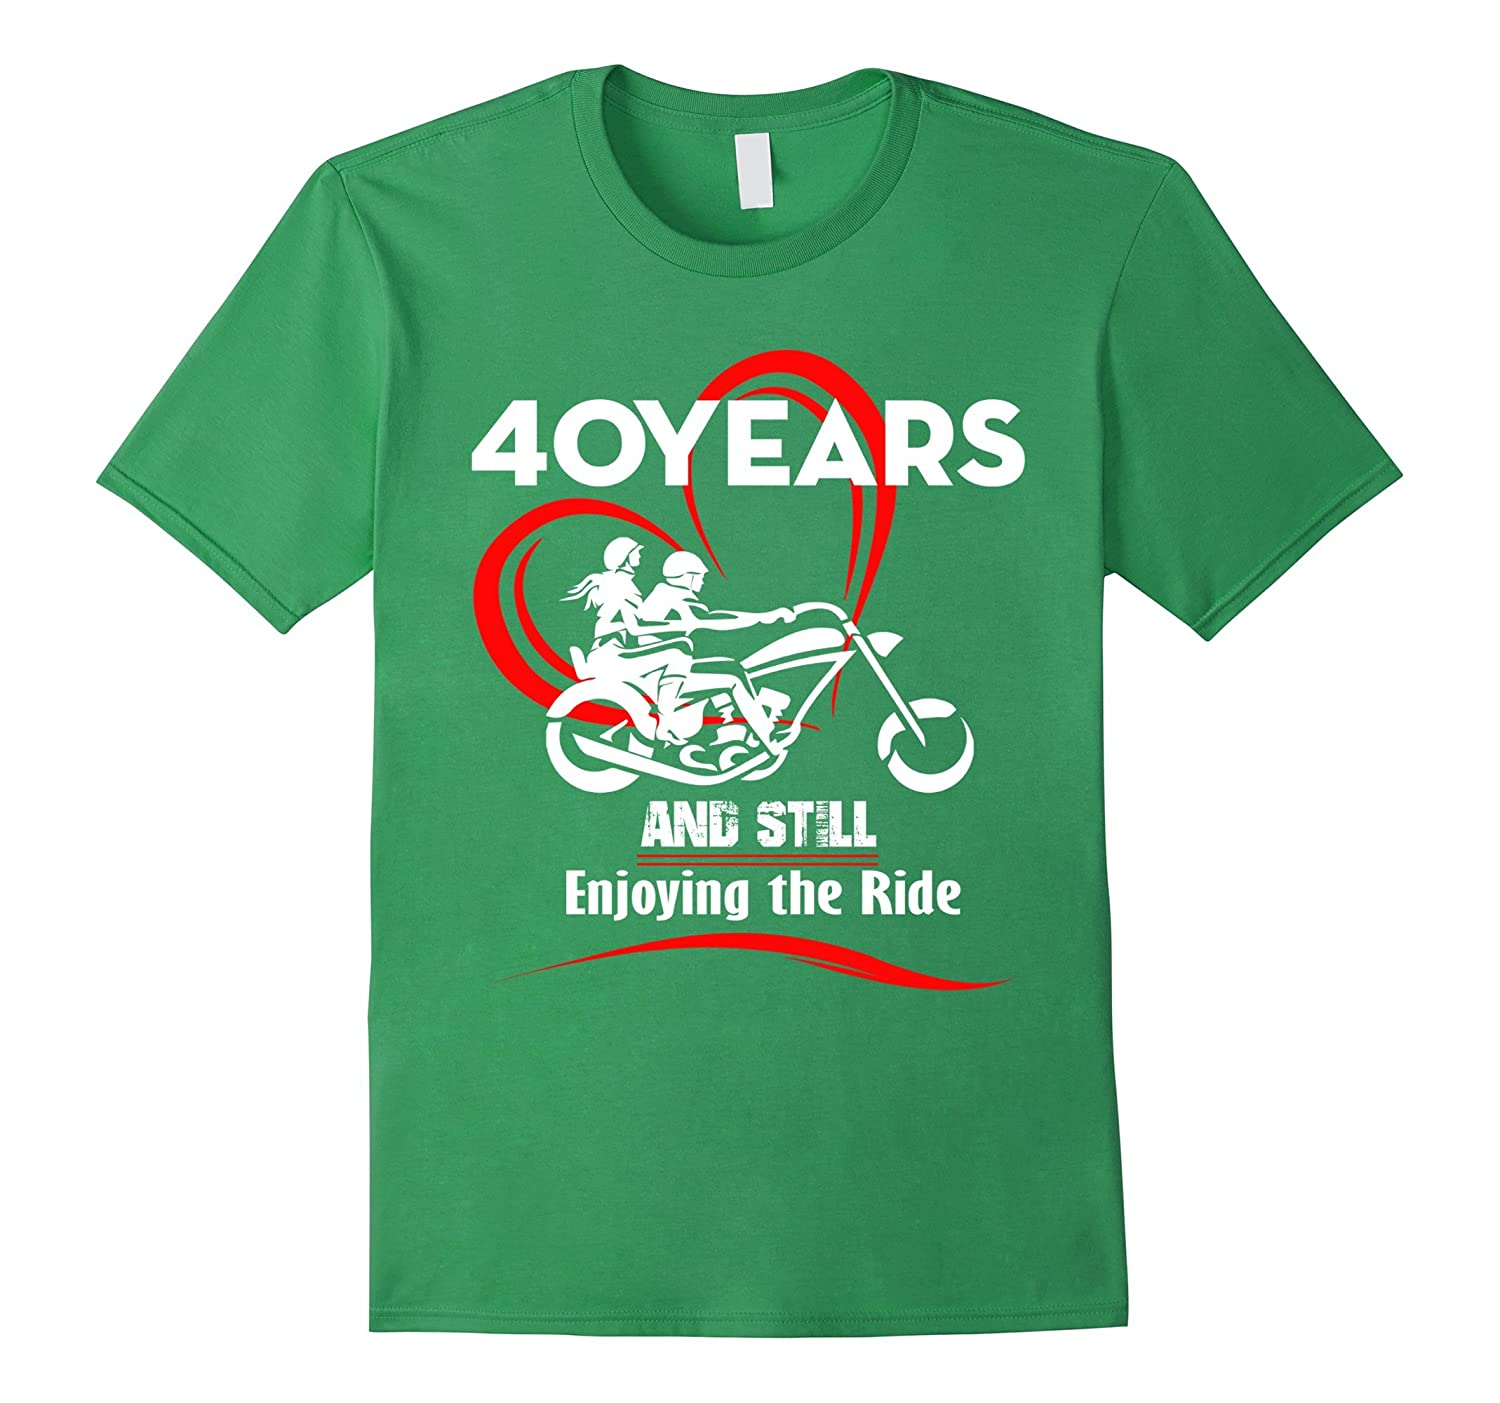 40th Wedding Anniversary Gifts.40th Wedding Anniversary Gift For Husband Wife Couple Shirt Gm